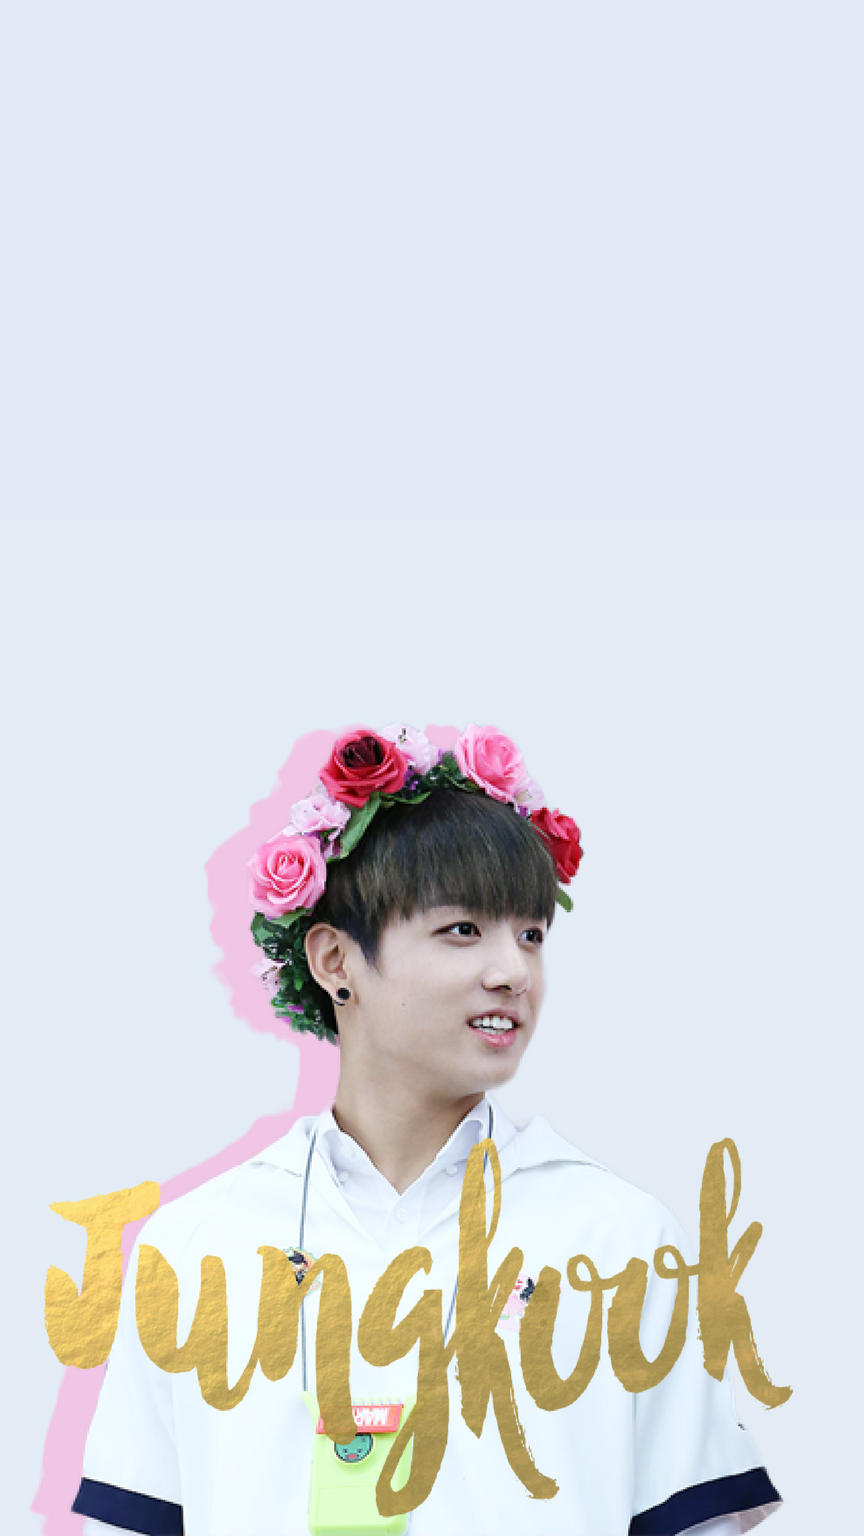 Cute Jung Kook Wallpapers Top Free Cute Jung Kook Backgrounds Wallpaperaccess Download transparent bts jungkook png for free on pngkey.com. cute jung kook wallpapers top free